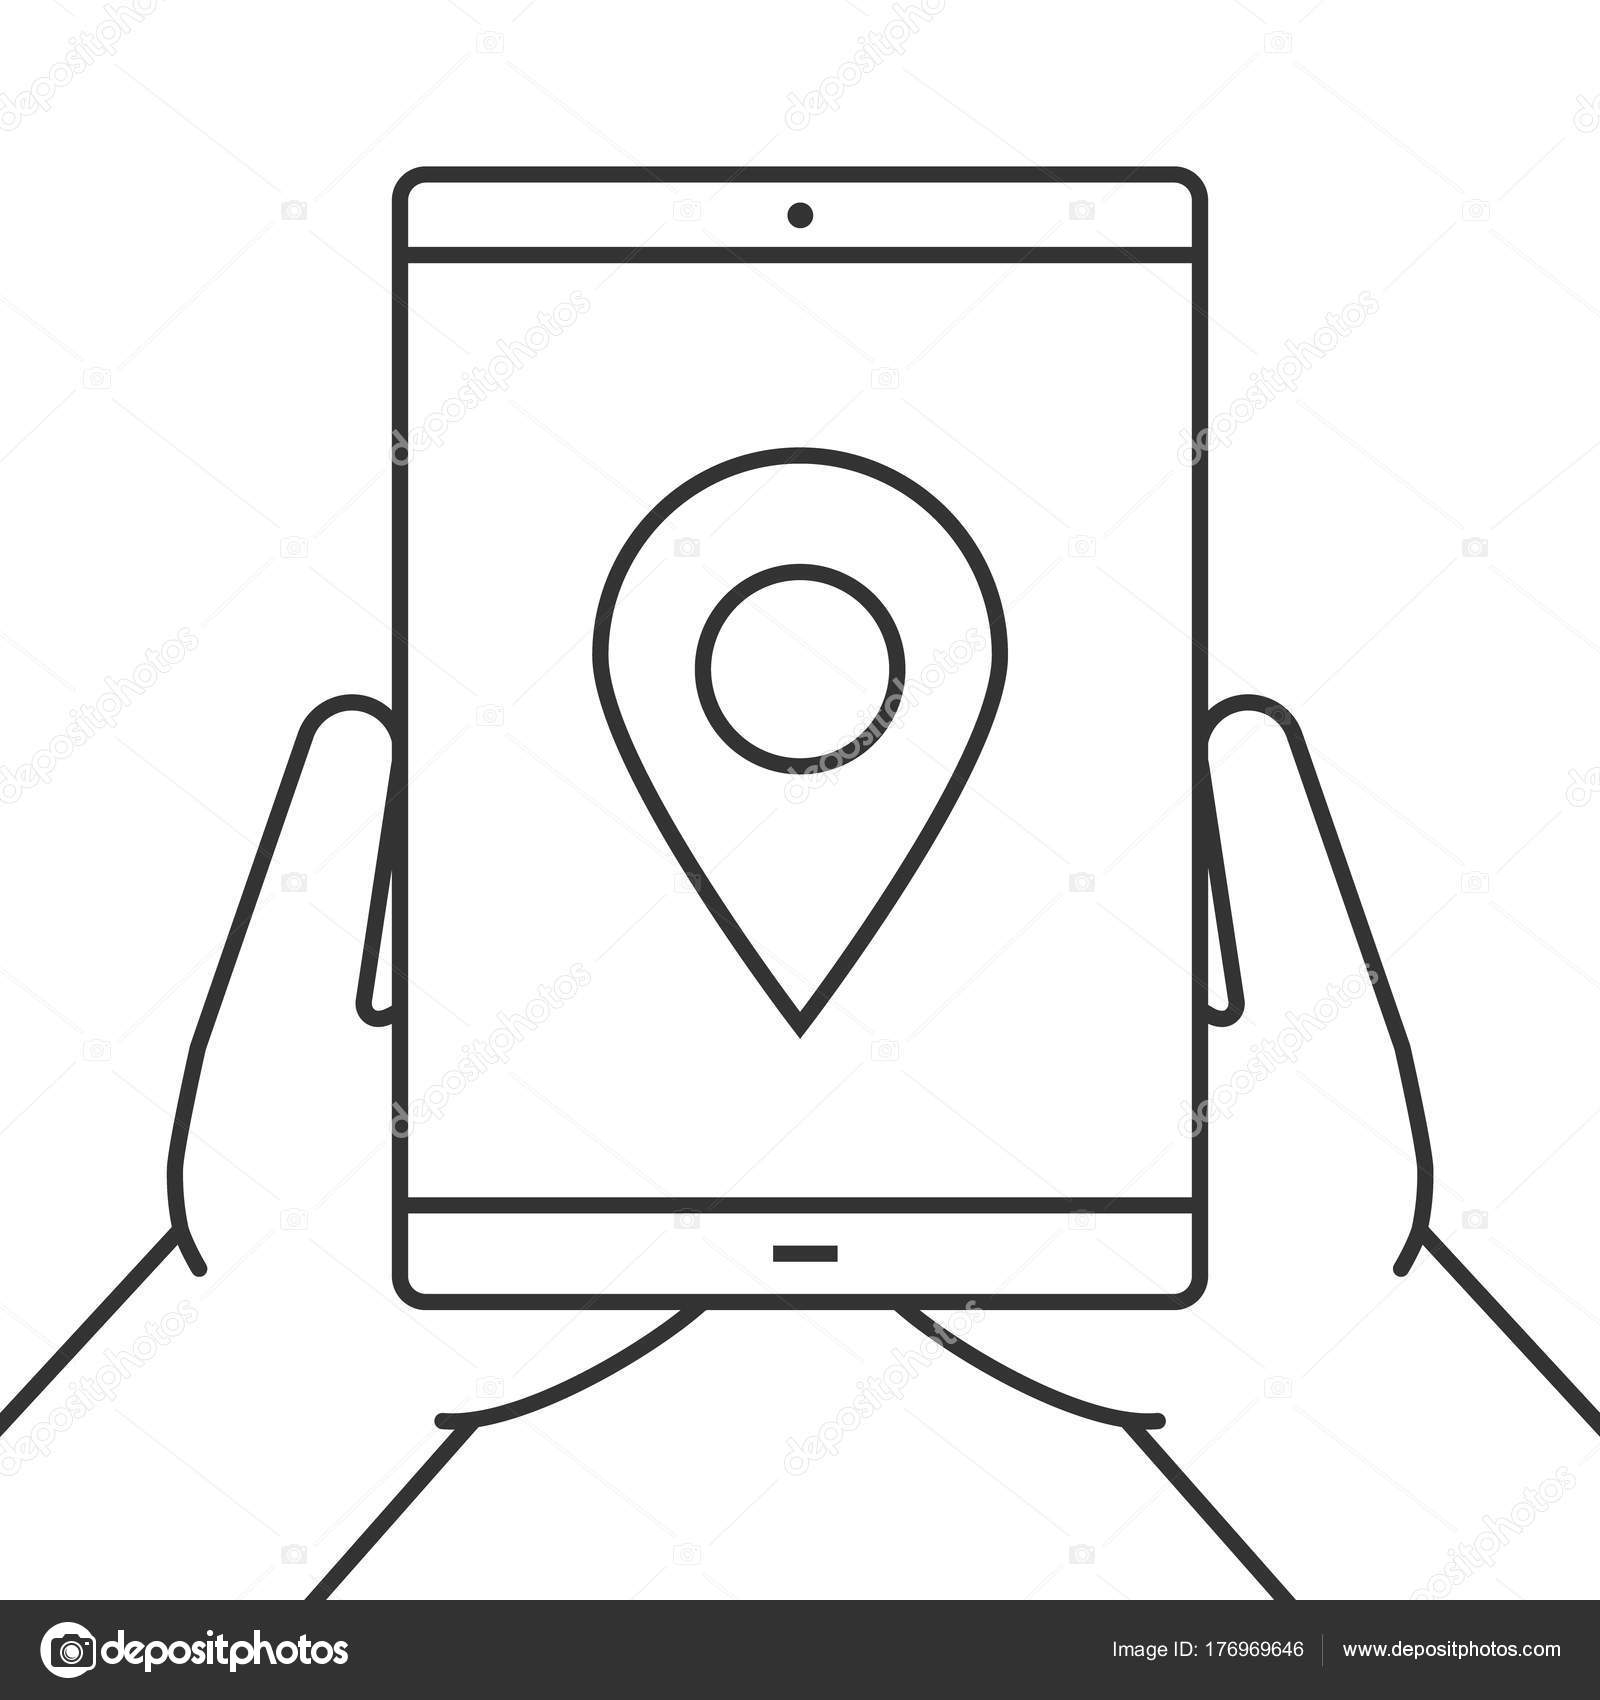 Gps Drawing